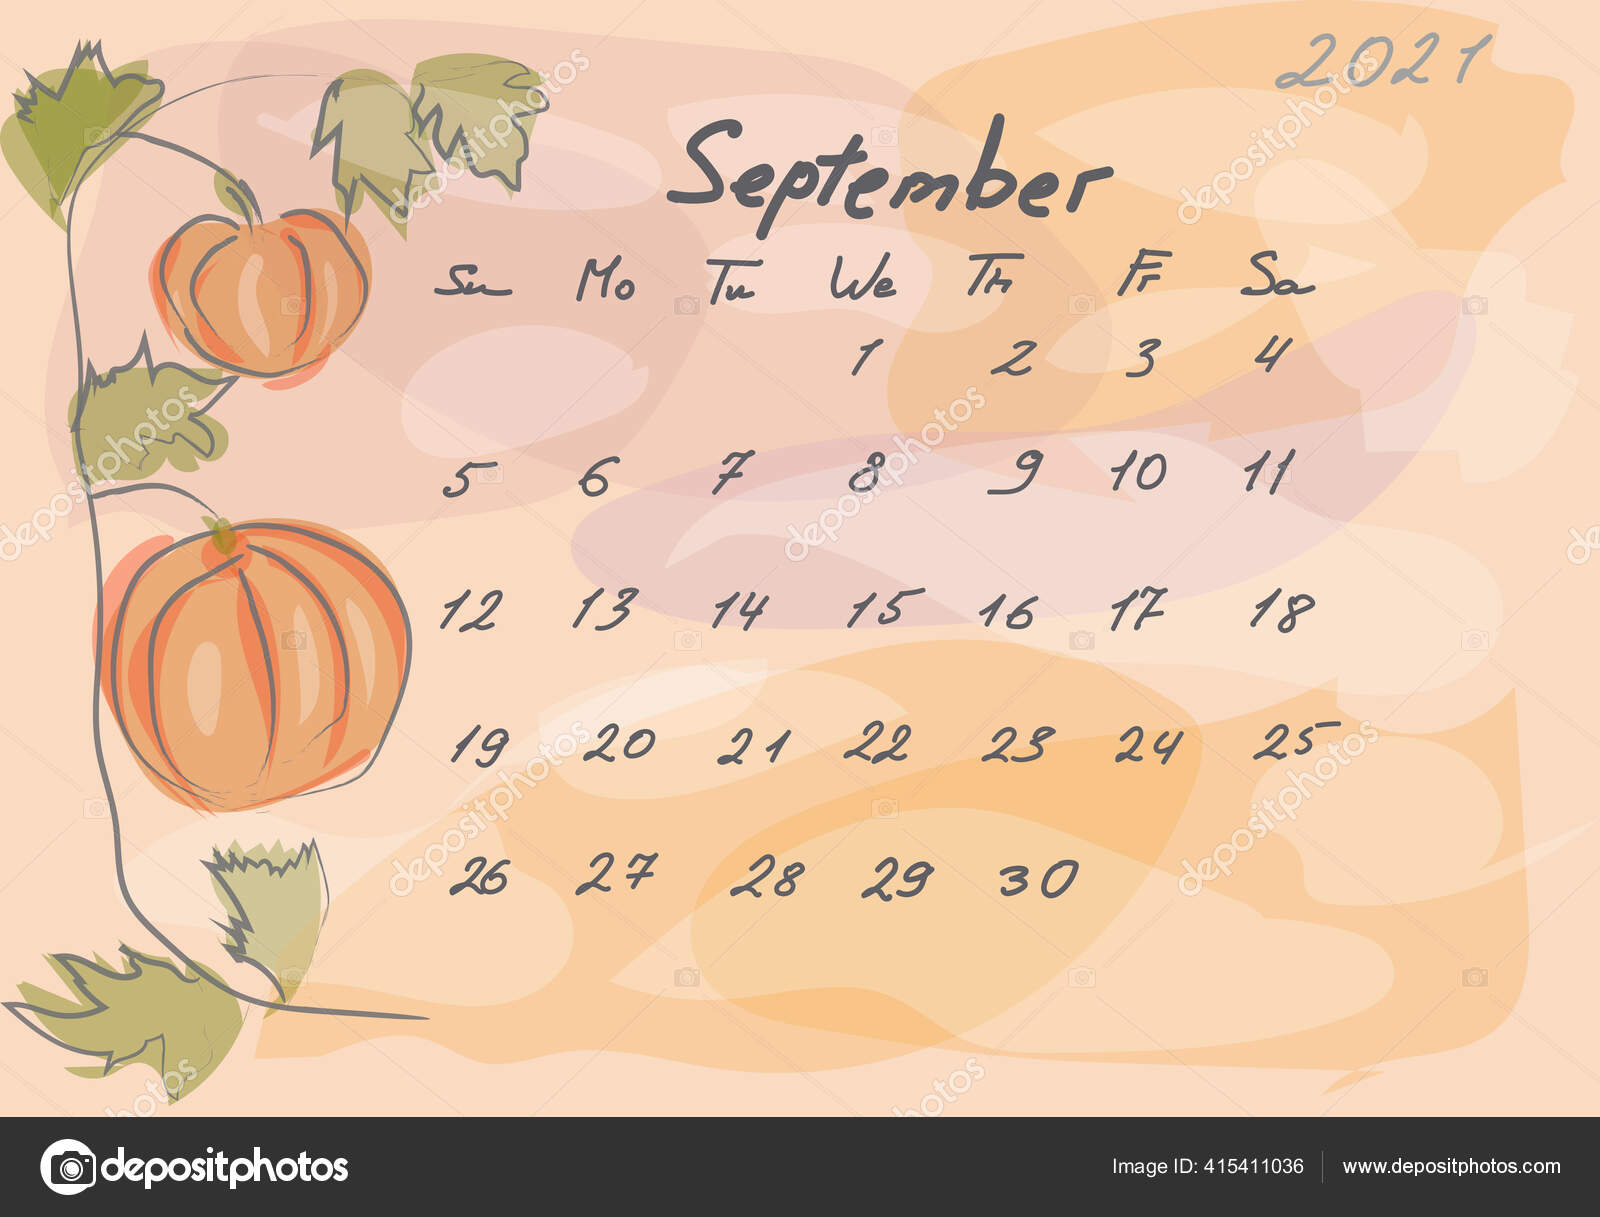 Calendar 2021. Abstact And Botanical. Watercolor Style. Sunday Starts  Handwritten Numbers And Letters. 415411036 pertaining to Depo Schedule 2021